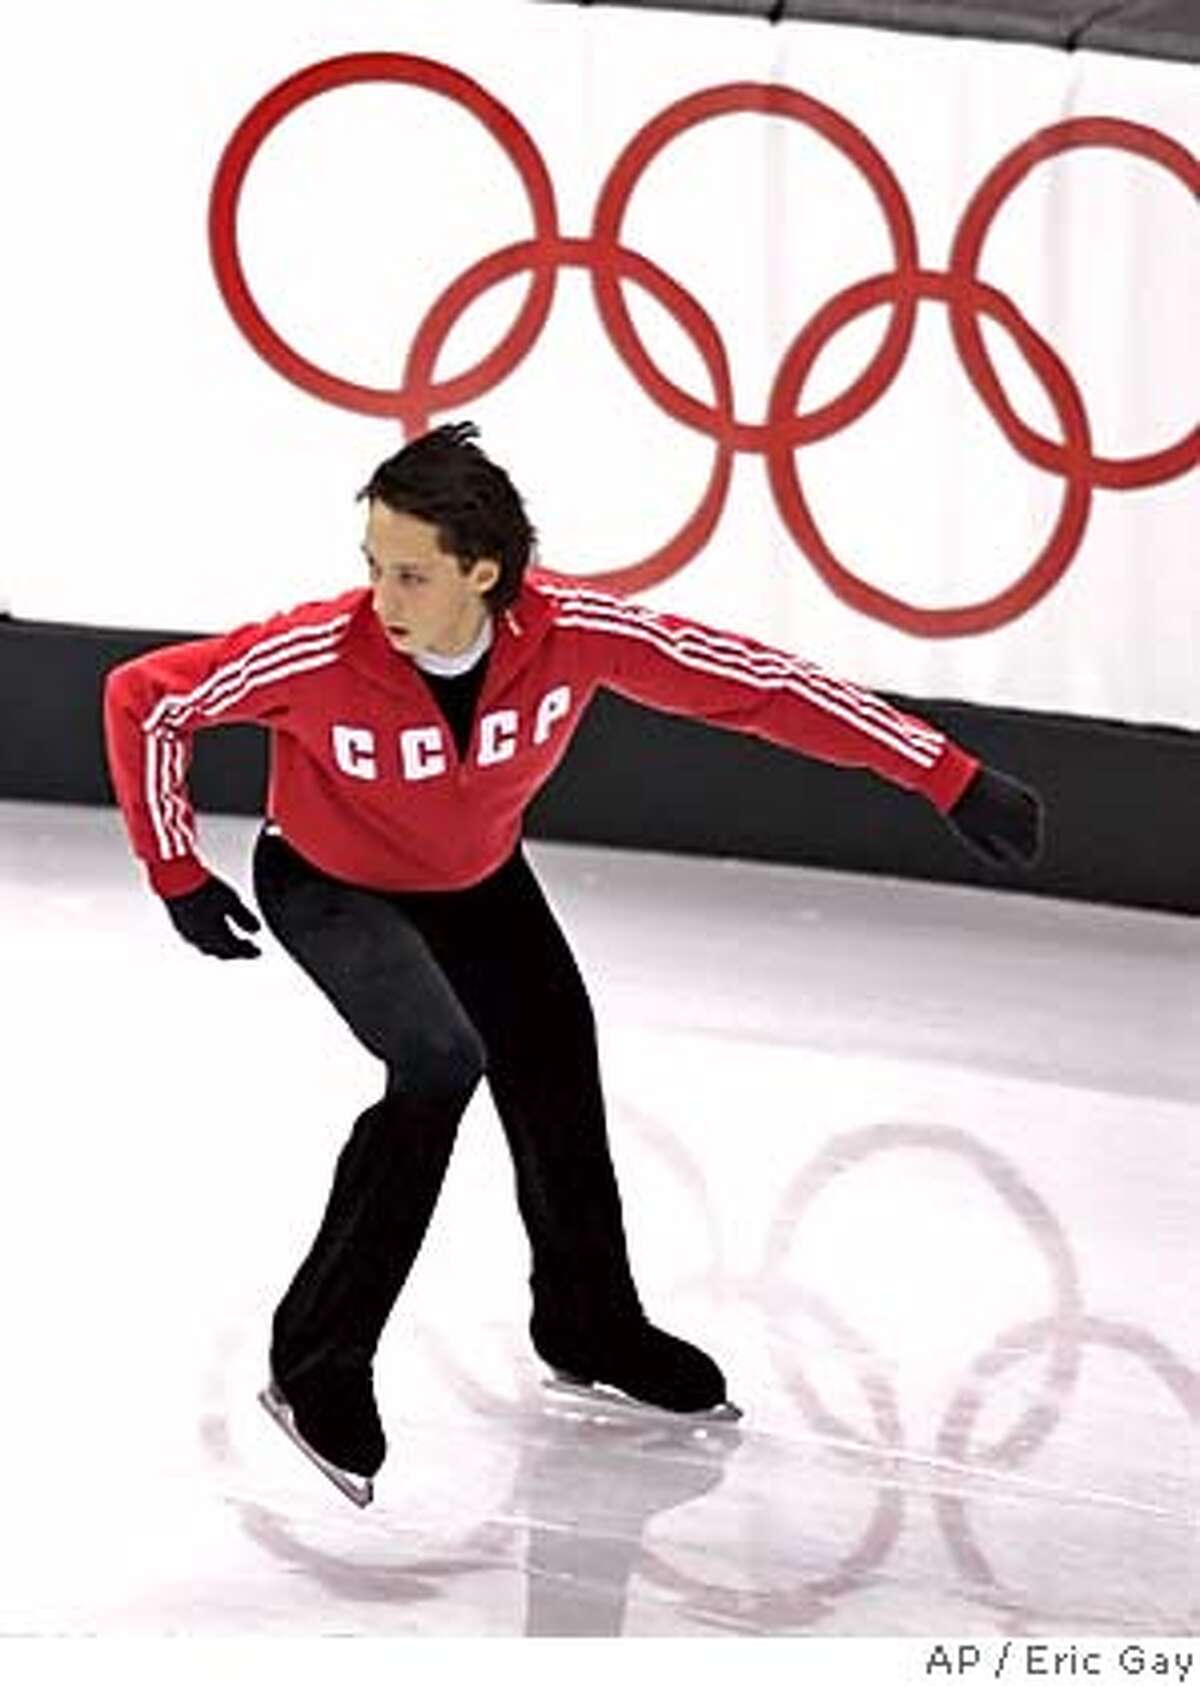 Wearing a Soviet jacket, United States 2006 figure skating champion Johnny Weir practices his routine during a training session at the Turin 2006 Winter Olympic Games in Turin, Italy, Sunday, Feb. 12, 2006. (AP Photo/Eric Gay)